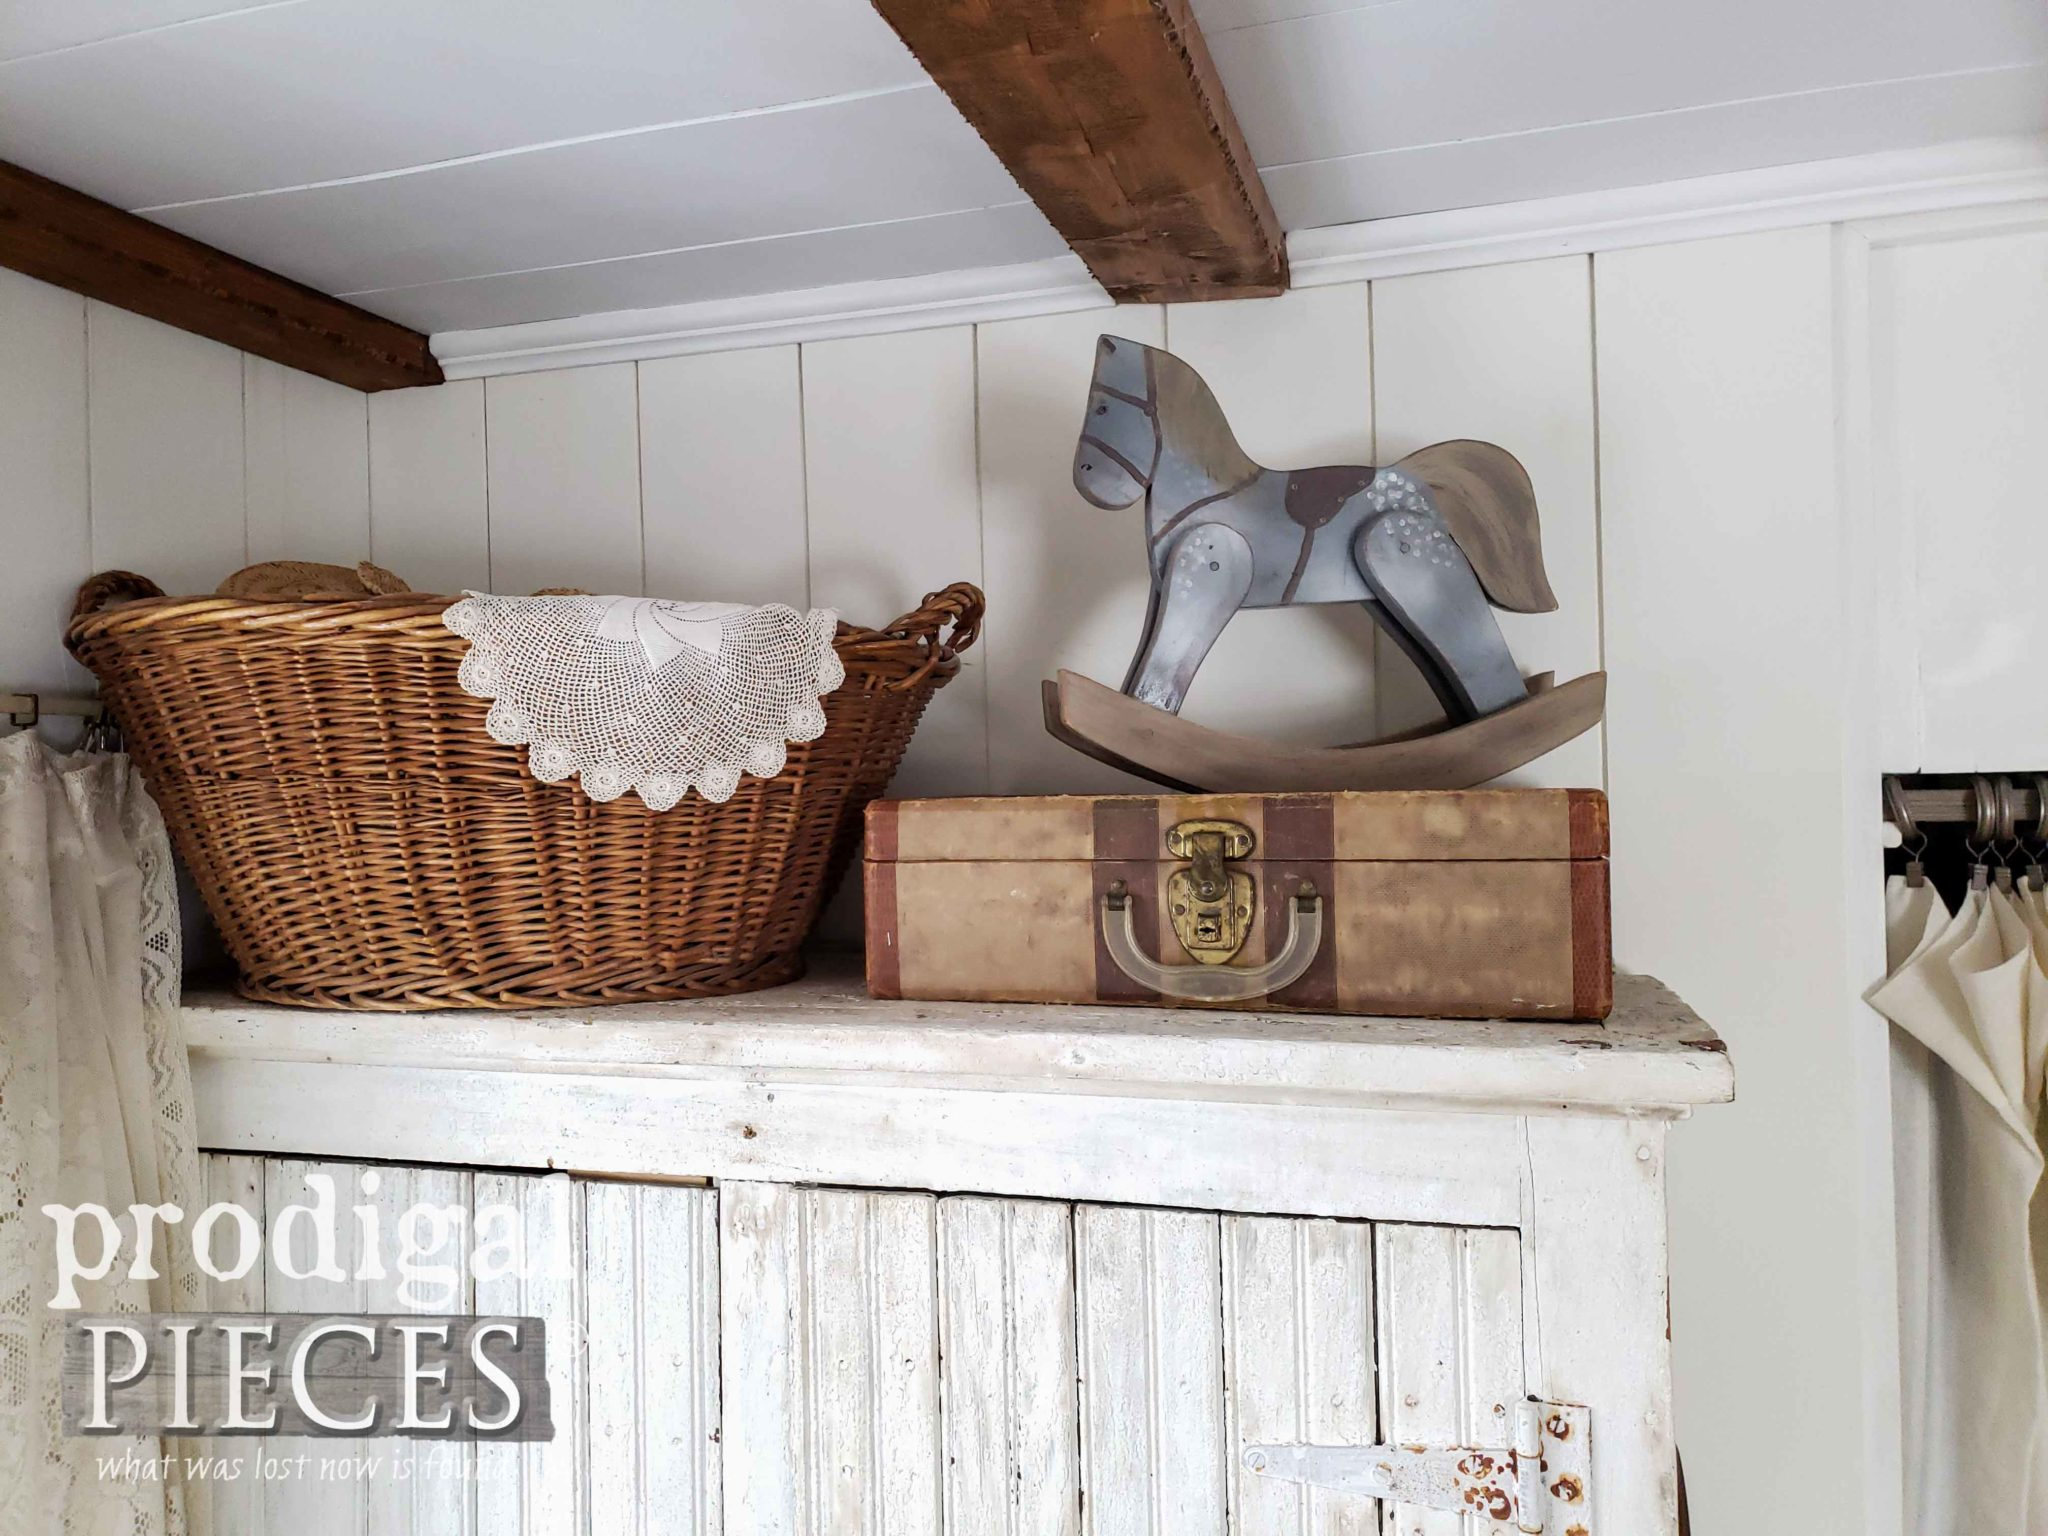 Farmhouse Bedroom Vignette with Handmade Hobby Horse and Vintage Paper Luggage by Larissa of Prodigal Pieces | prodigalpieces.com #prodigalpieces #handmade #farmhouse #vintage #diy #shopping #home #homedecor #homedecorideas